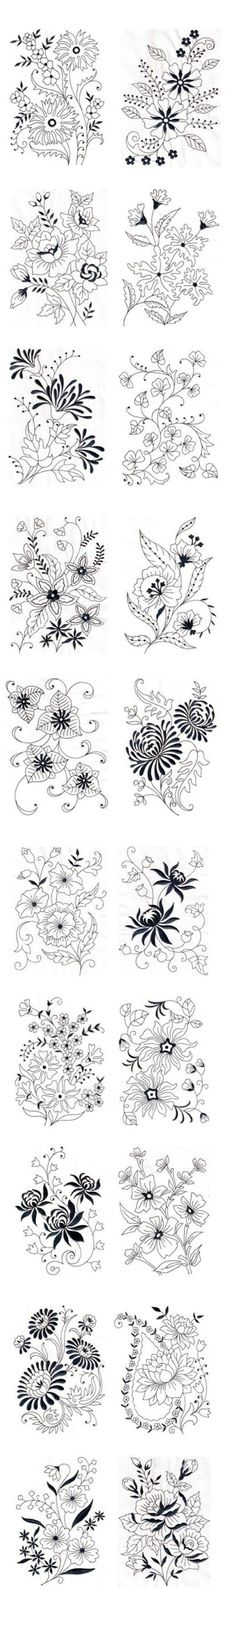 Amazing Emotions - Vintage Florals 01 Machine Embroidery Designs --- Vintage Florals 01 These fabulous vintage floral designs can add supreme beauty to your products like bed linen, bath linen, kitchen linen, curtains and even dresses. You can notice t Vintage Embroidery, Ribbon Embroidery, Cross Stitch Embroidery, Floral Embroidery, Embroidery Tattoo, Machine Embroidery Designs, Embroidery Patterns, Flower Patterns, Dress Patterns